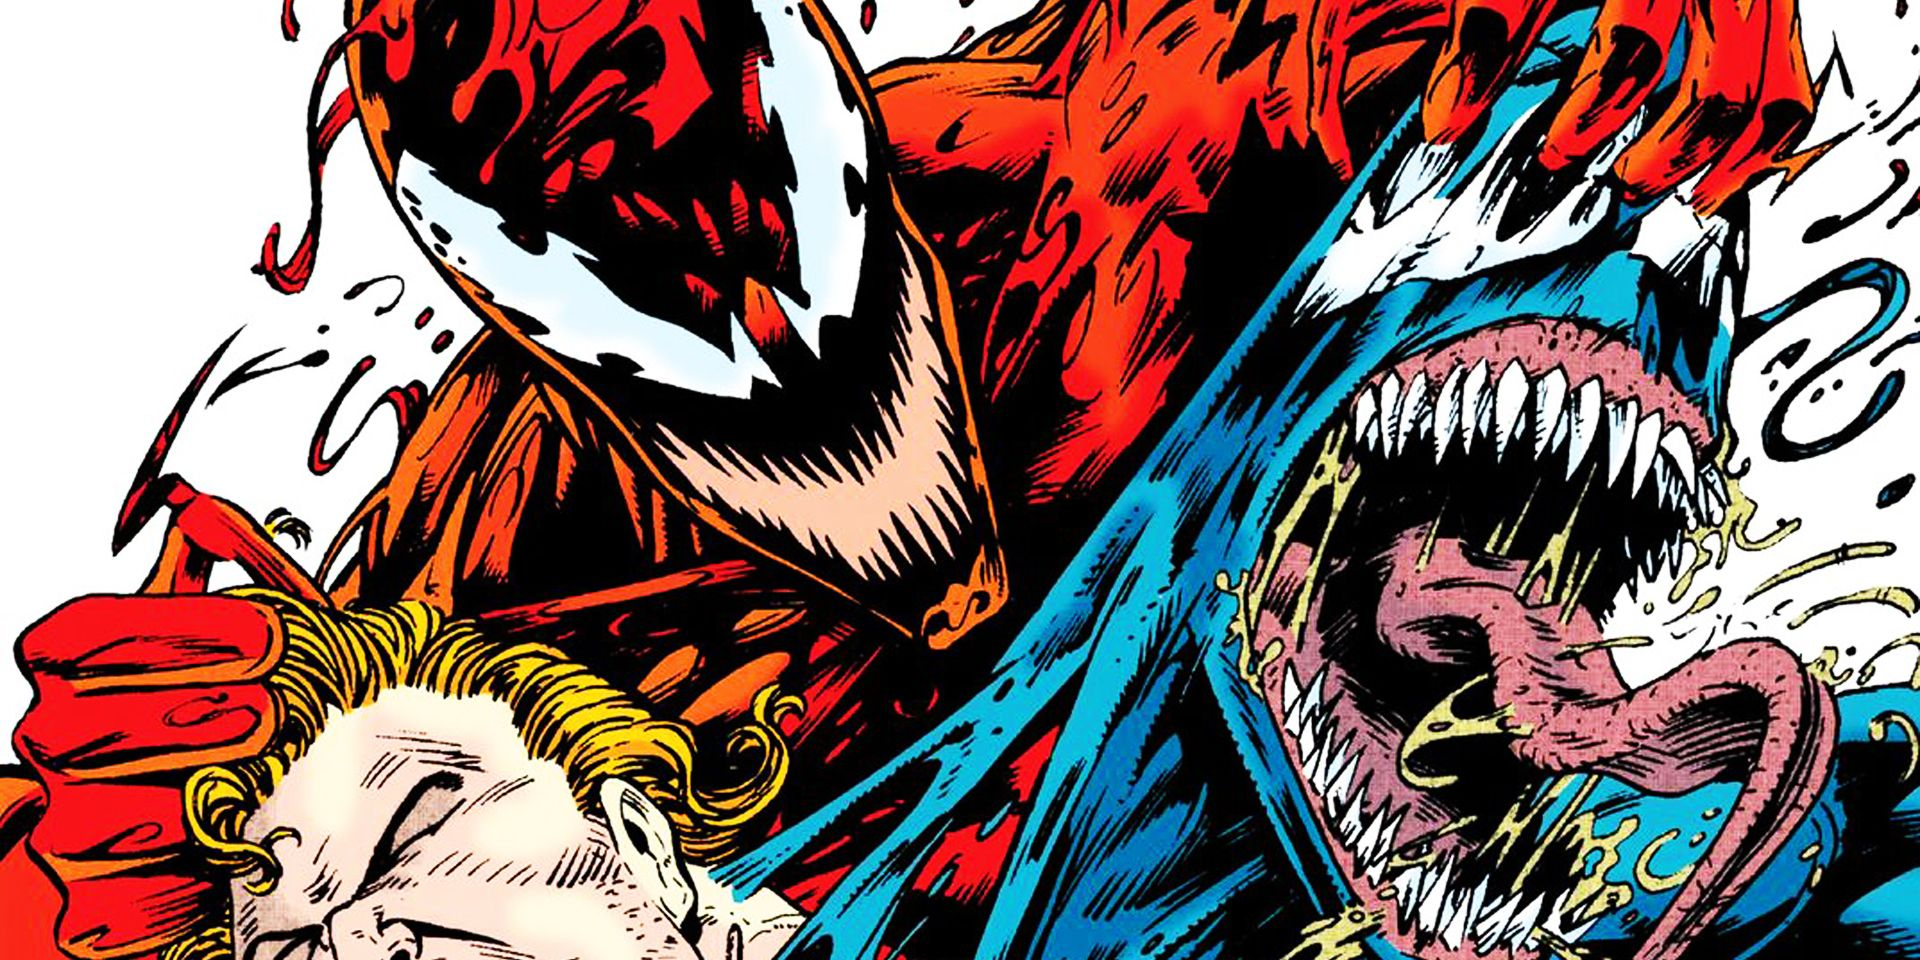 Why Spider-Man and Venom Might Team-Up to Defeat Carnage | CBR